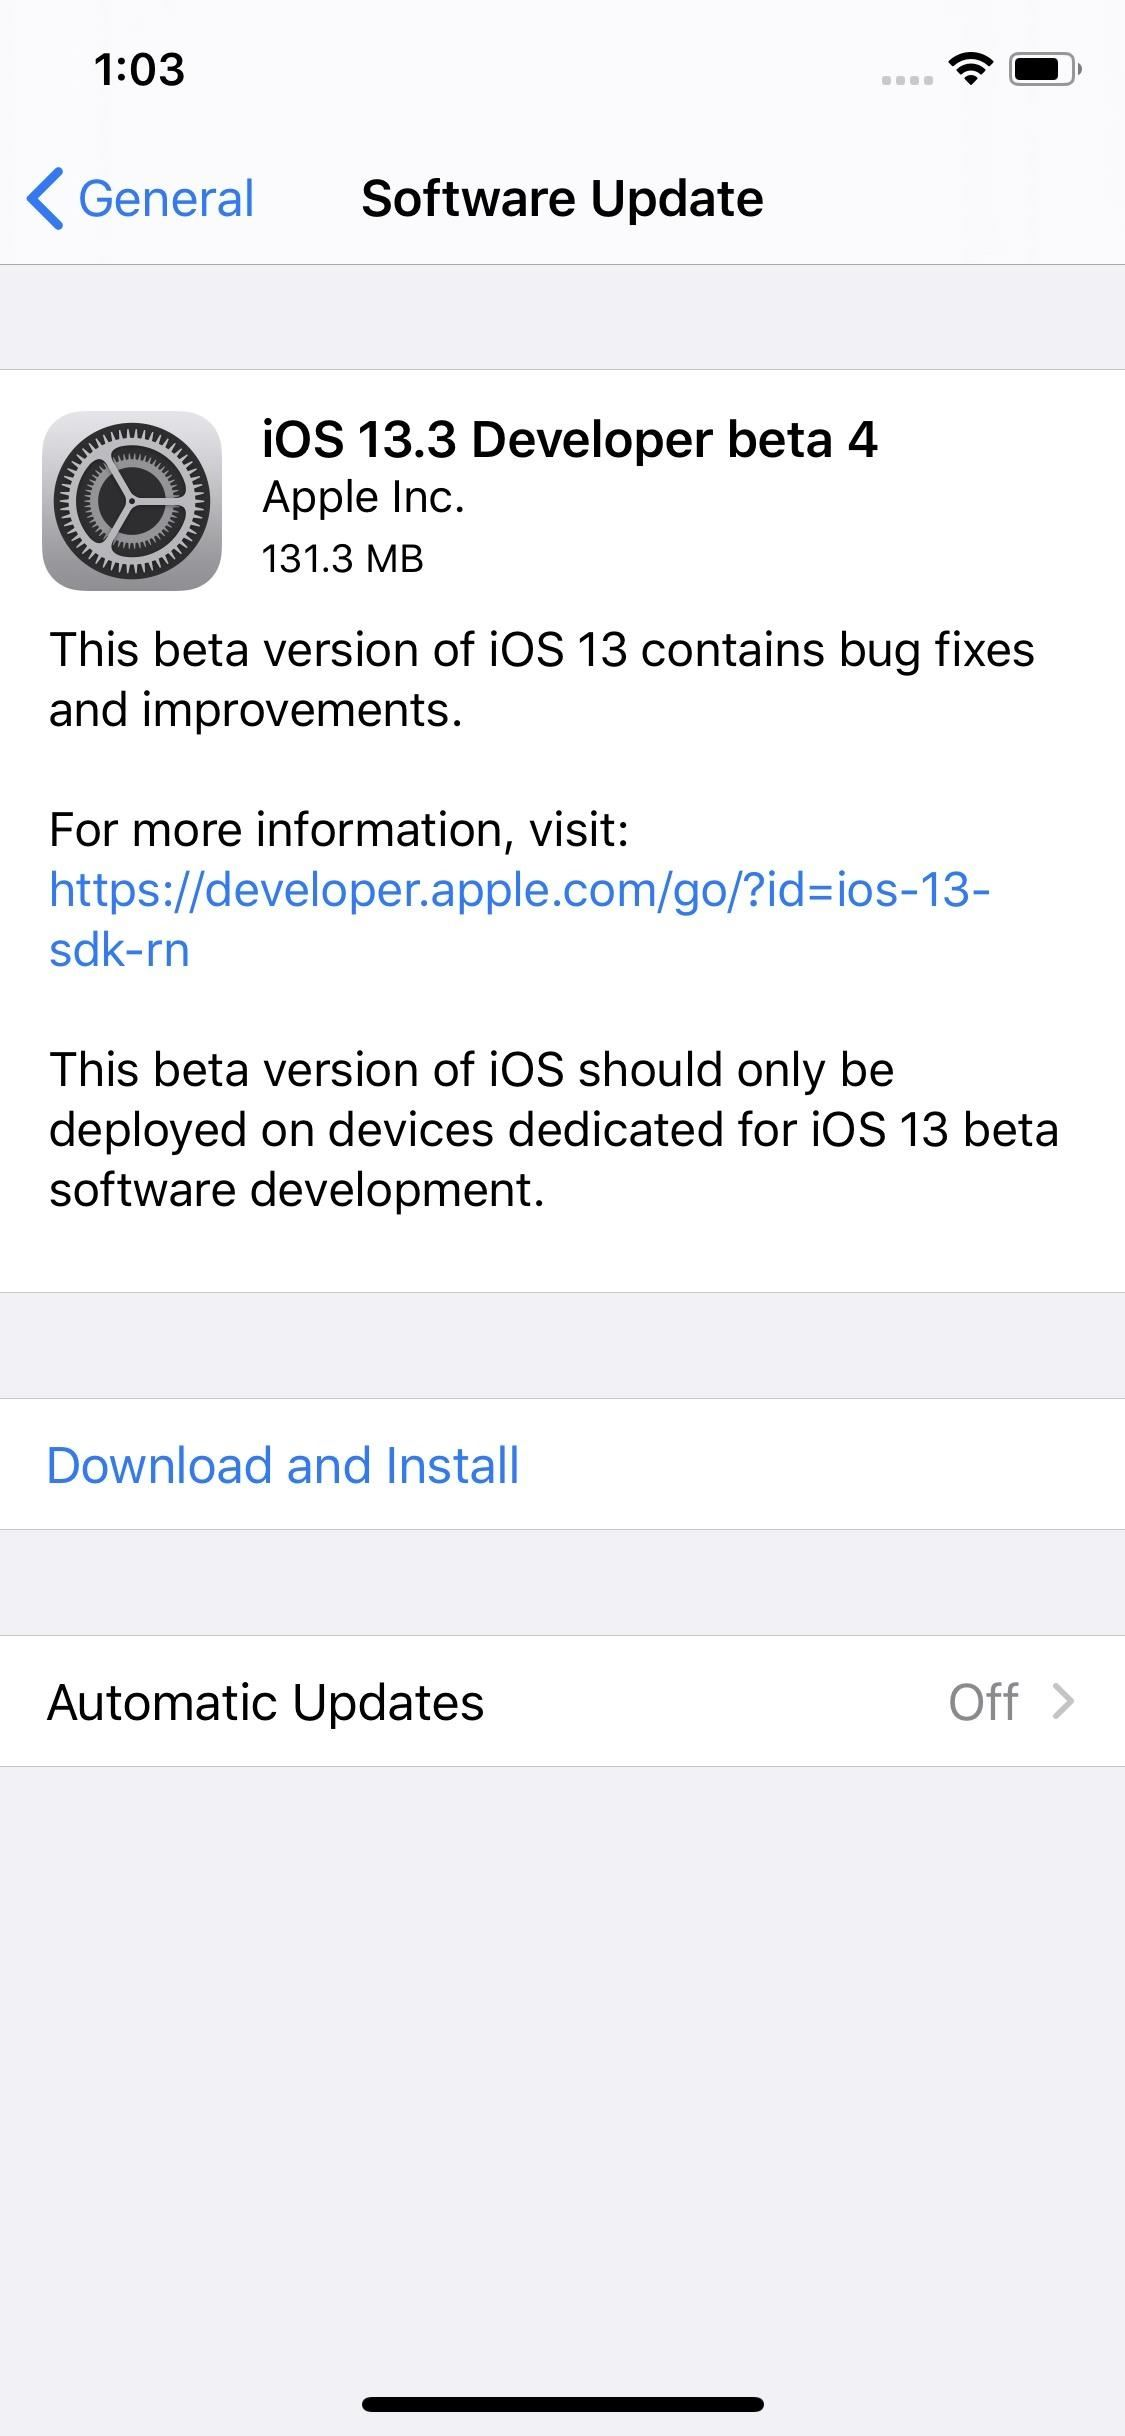 Apple Releases iOS 13.3 Beta 4 for iPhone with Minor Under-the-Hood Improvements